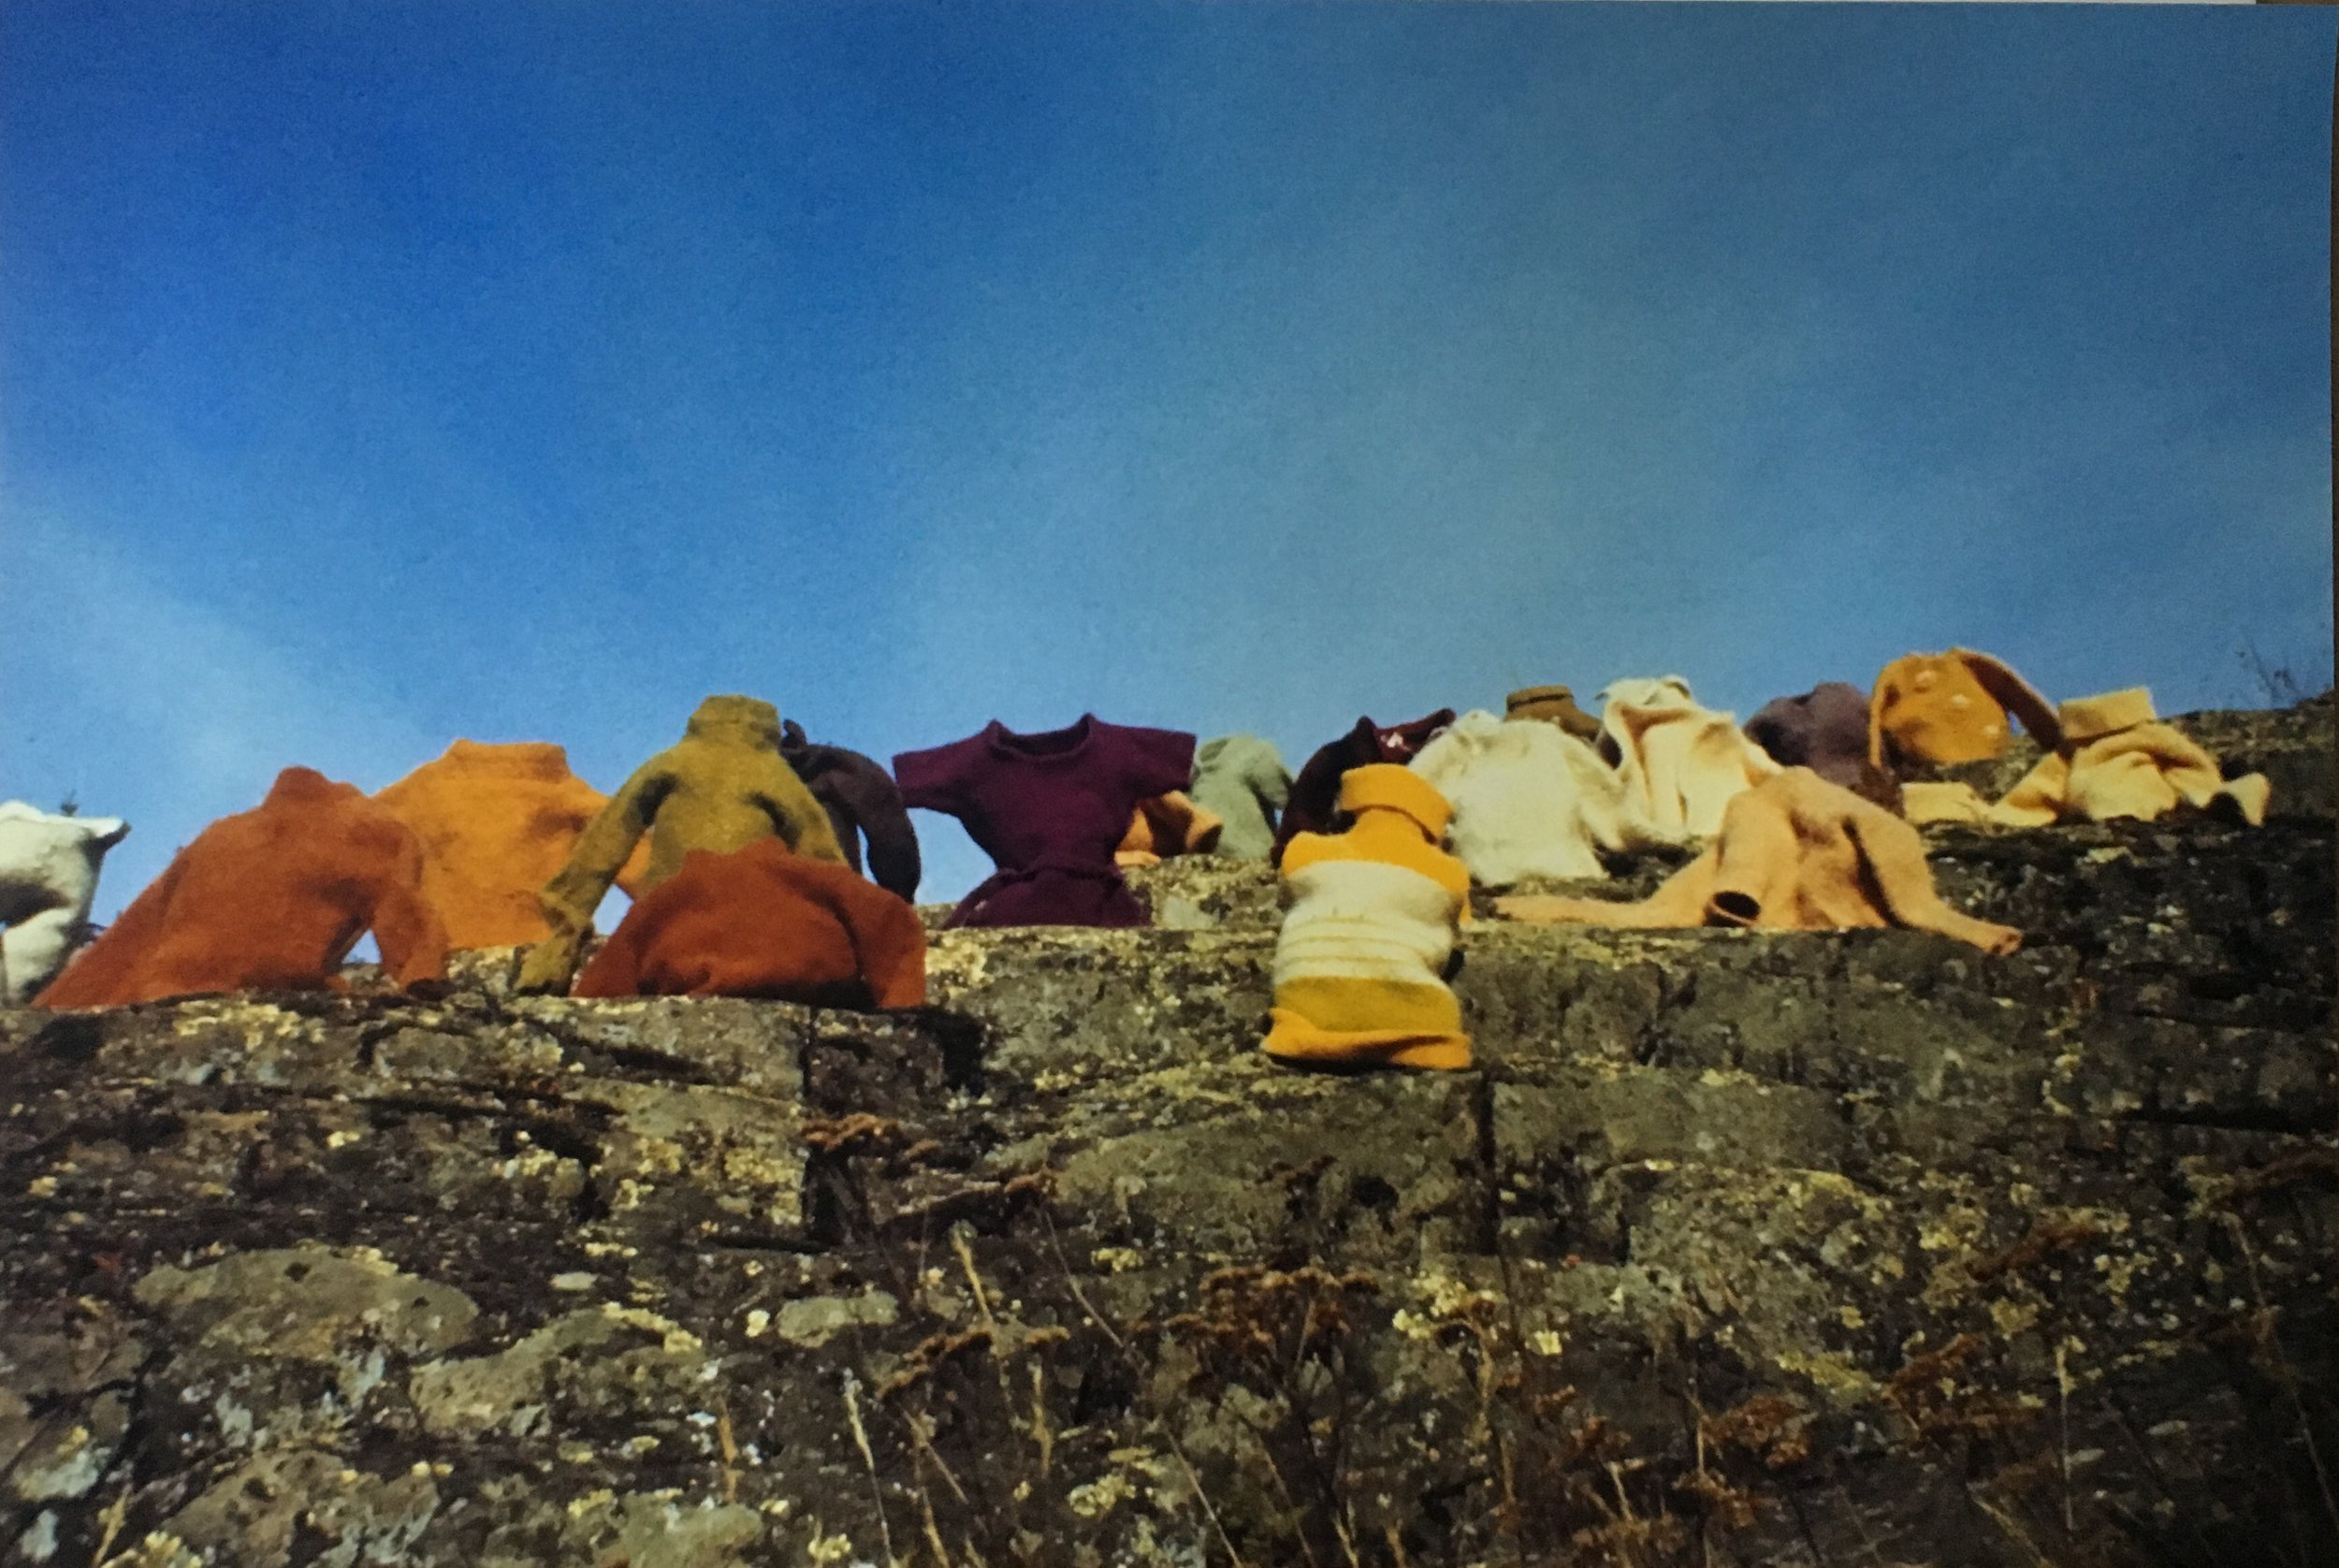 Aganetha Dyck + Peter Dyck  Clothing On the Hill  1978 / 2018  Edition of 9 / 1 AP  Chromogenic Print  16 x 24 inches